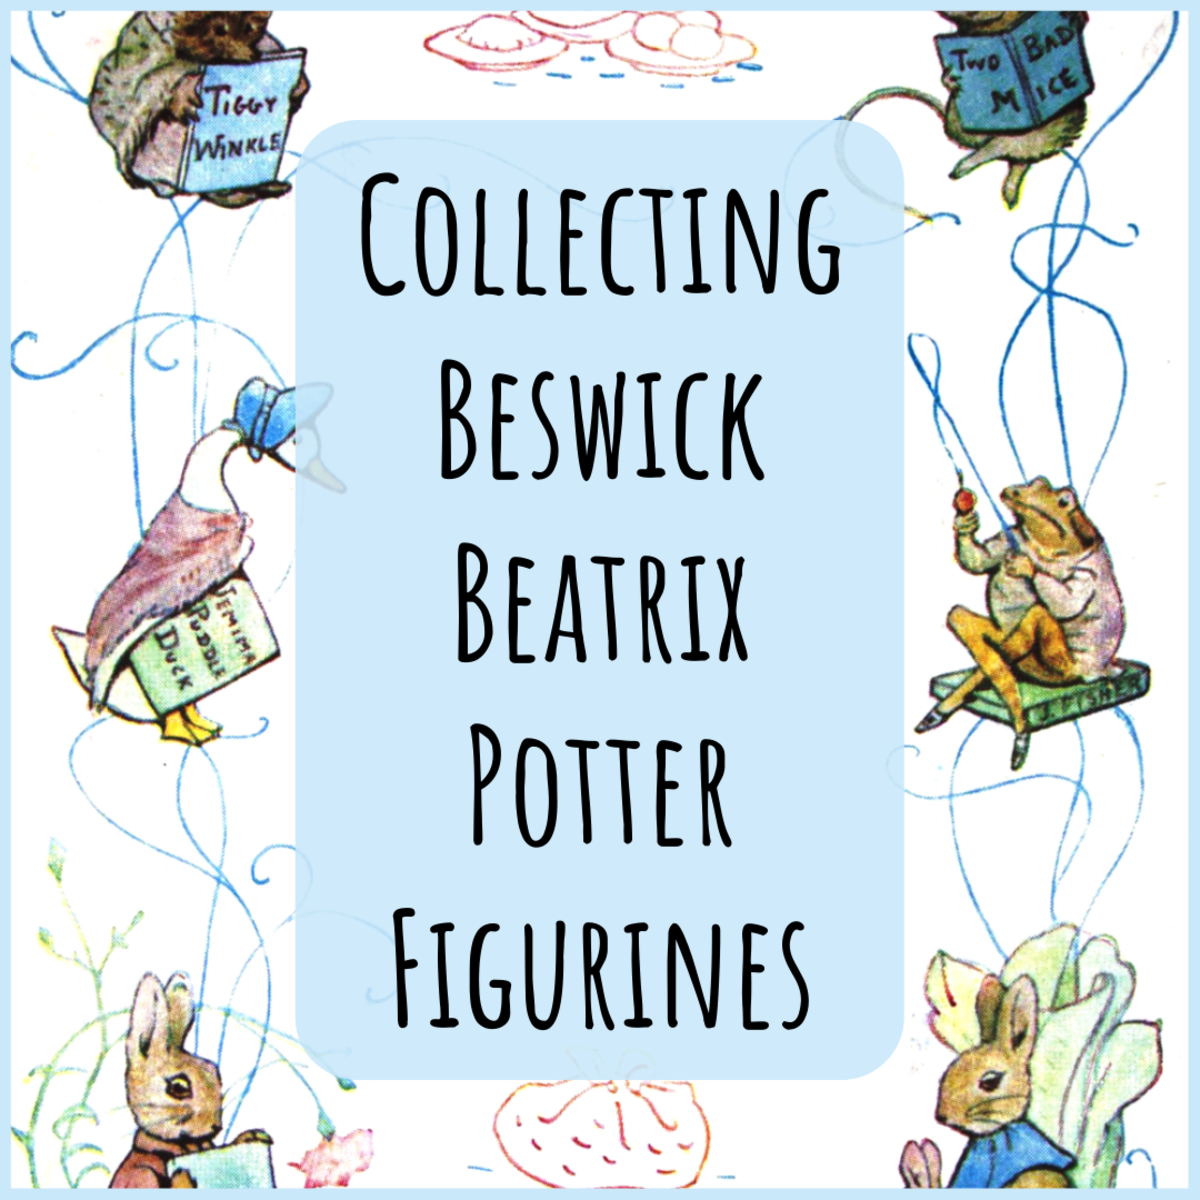 Explore some of the Beswick Beatrix Potter figurines in my collection, and learn about backstamps and the life and books of Beatrix Potter.